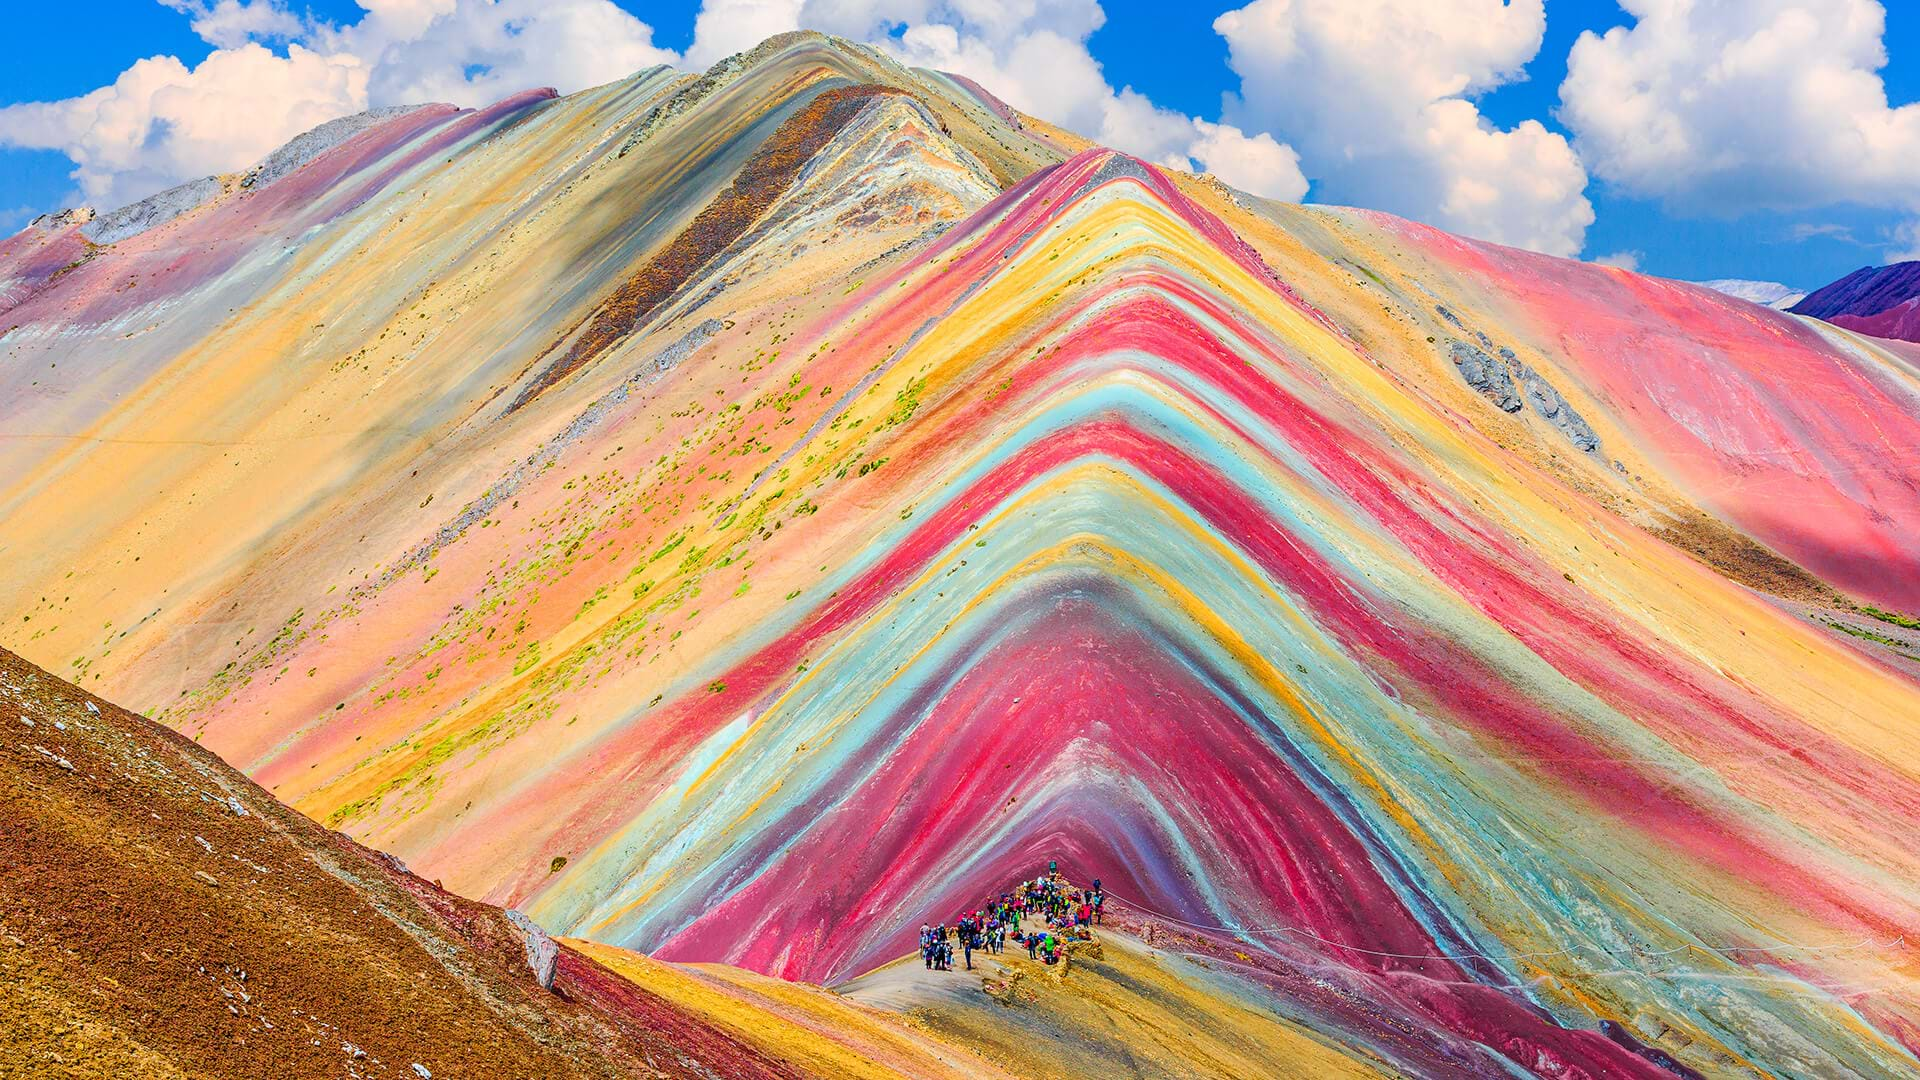 Vinicunca, the beautiful mountain of seven colors